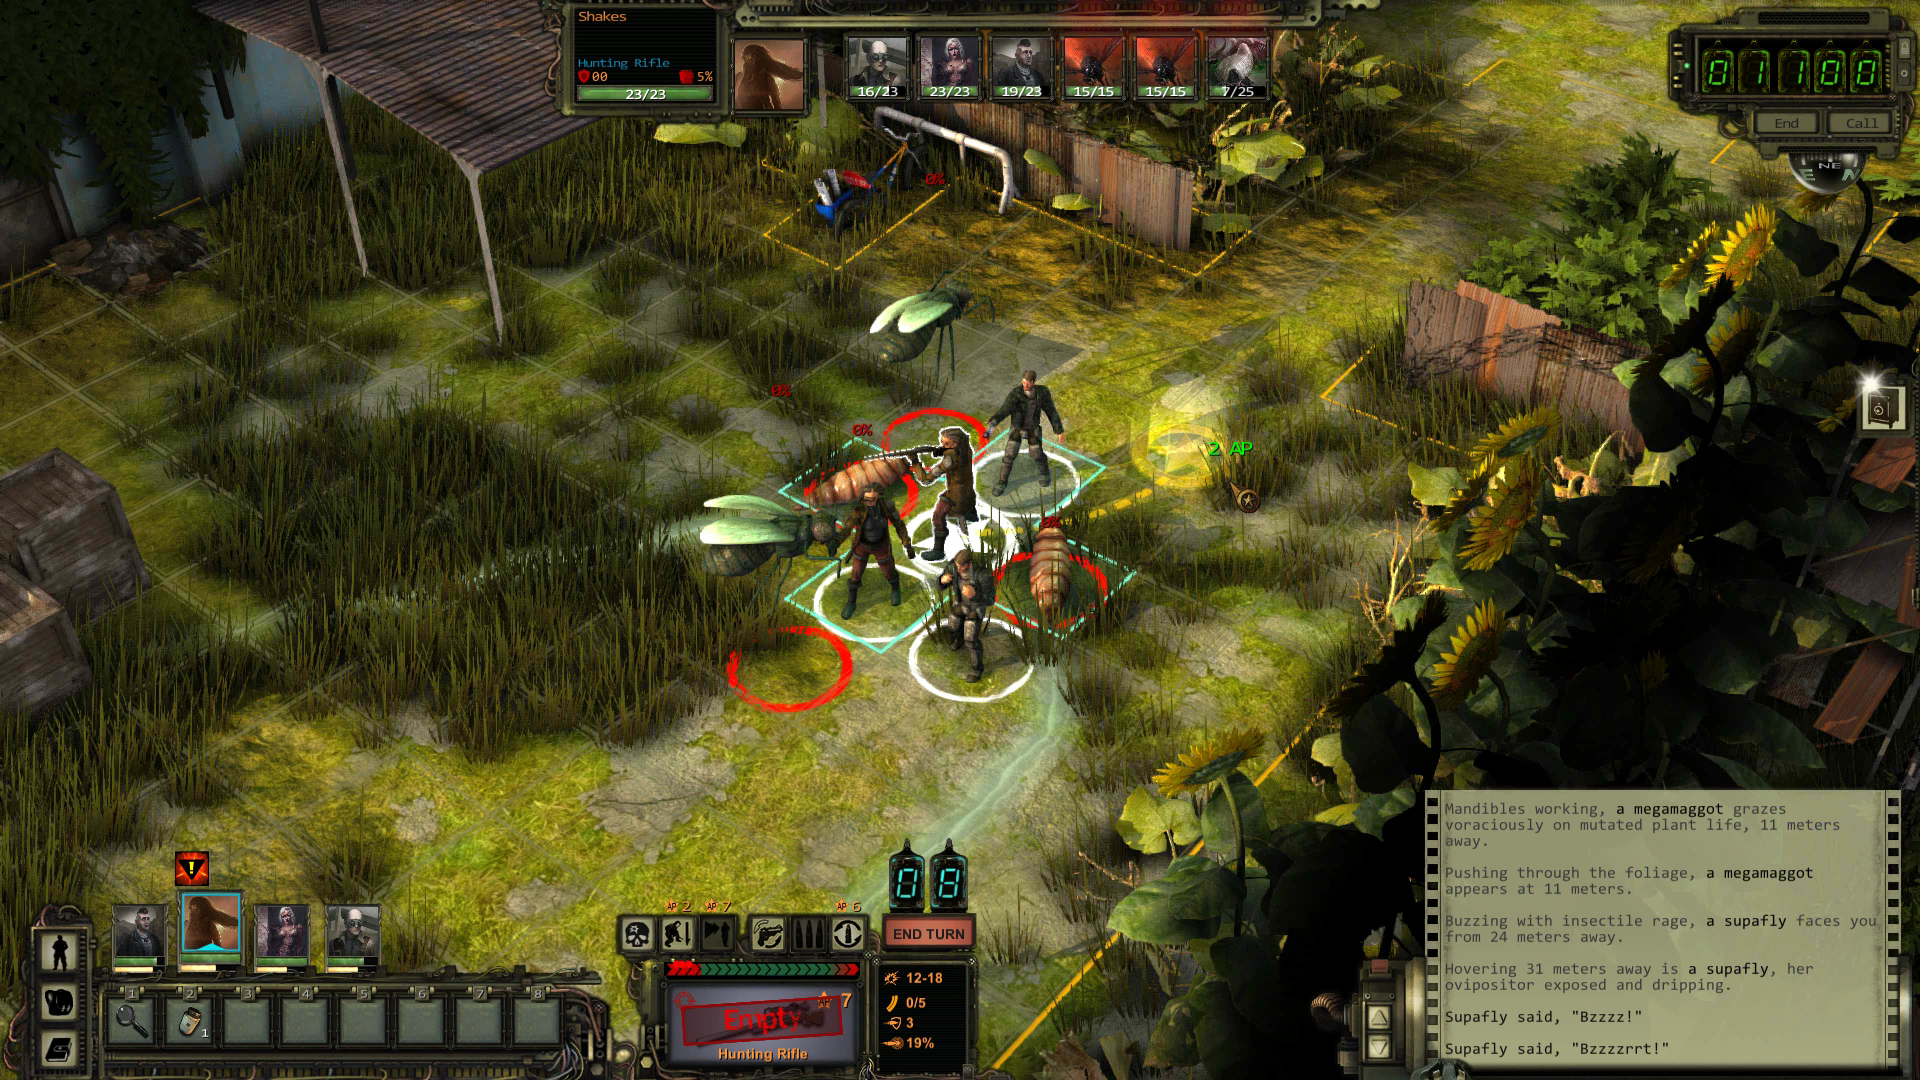 20 Minutes of Wasteland 2